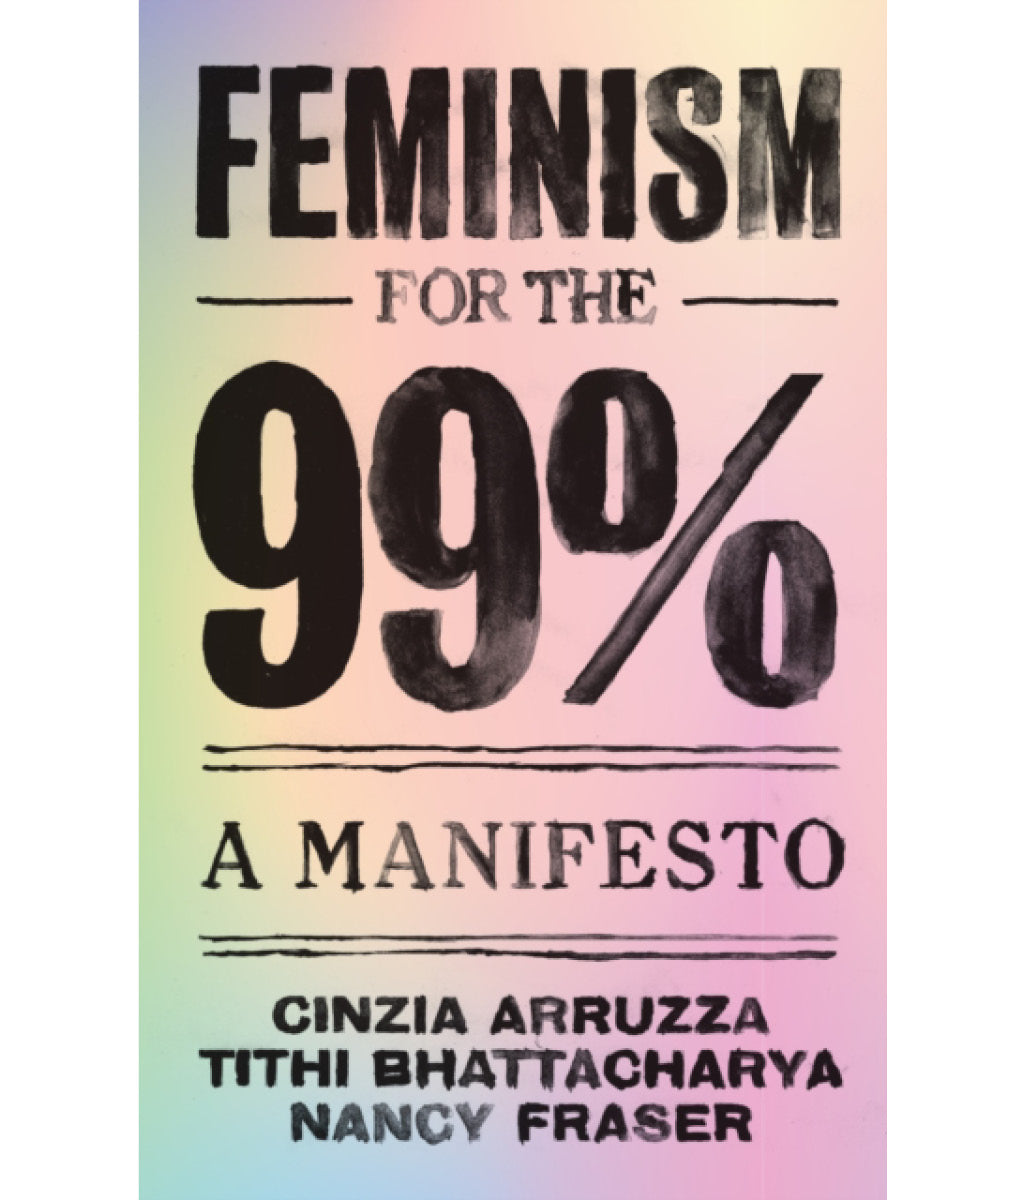 Feminism for the 99 by Cinzia Arruzza, Tithi Bhattacharya and Nancy Fraser